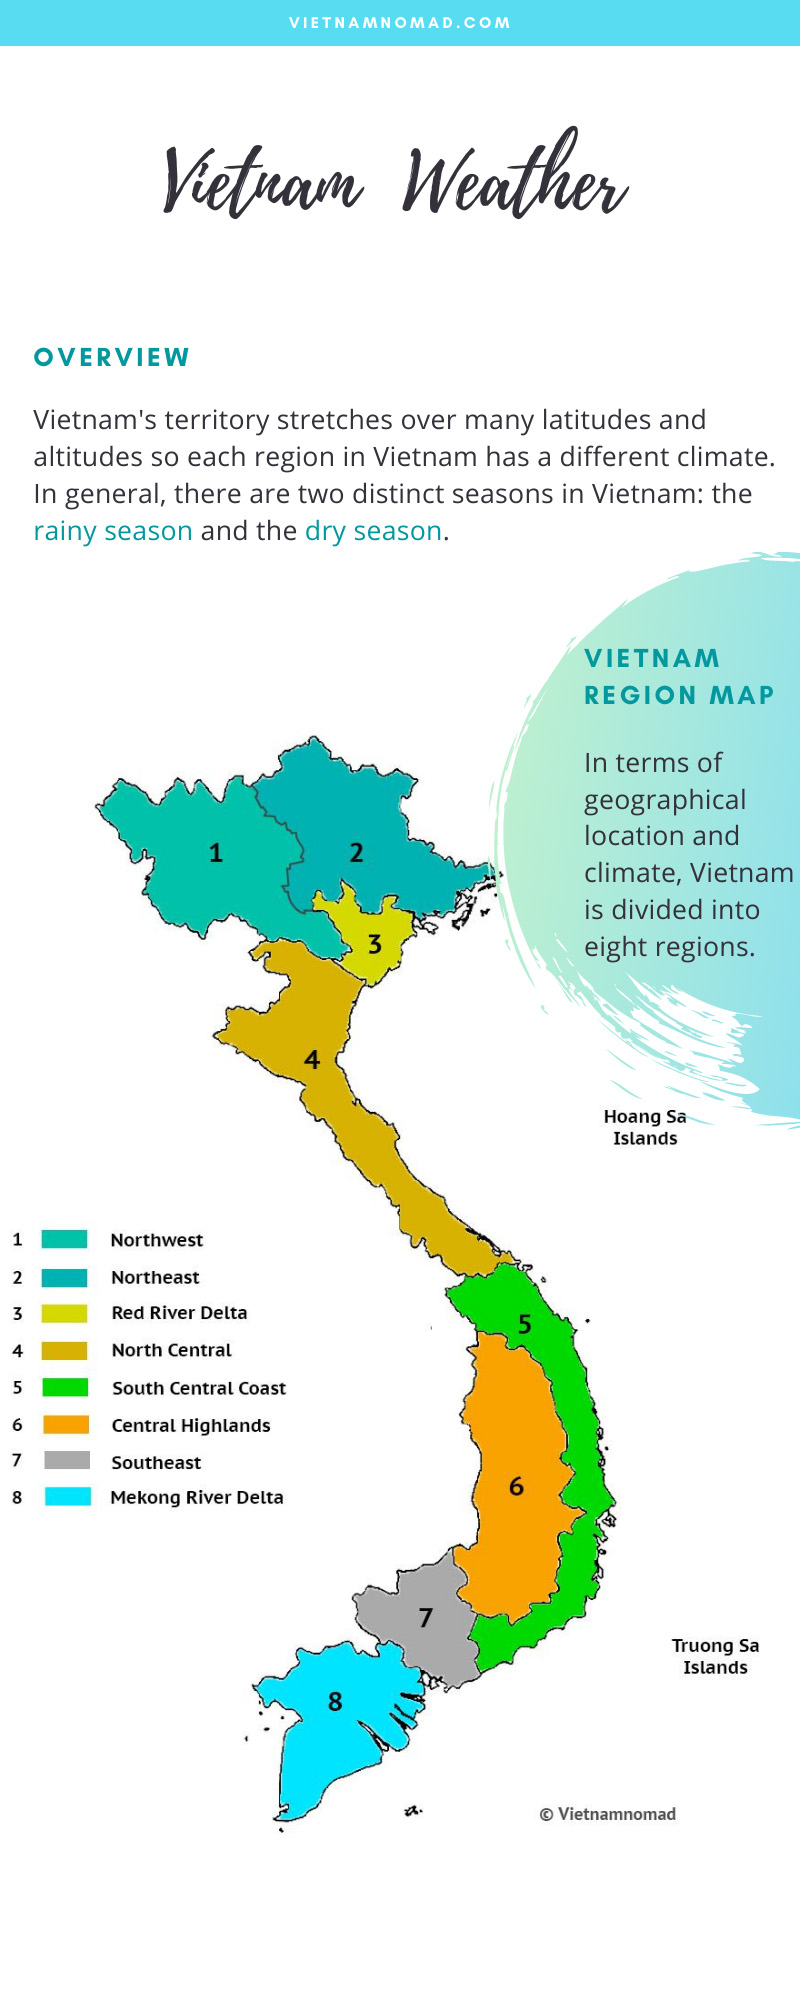 Vietnam weather infographic - The climate in Vietnam